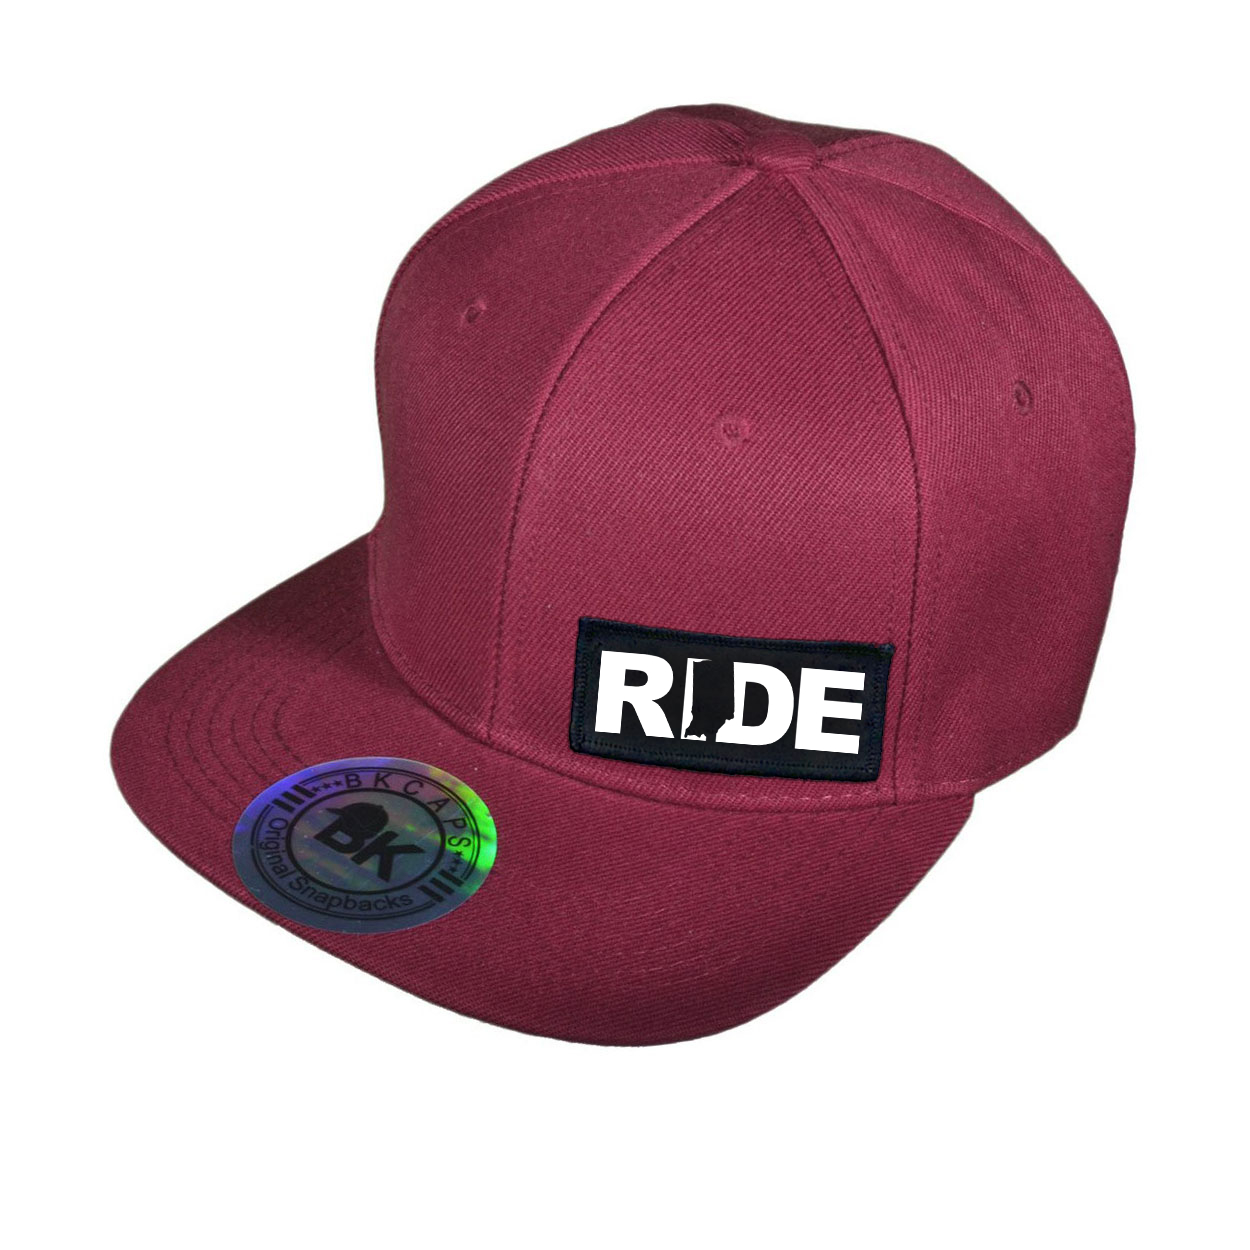 Ride Indiana Night Out Woven Patch Snapback Flat Brim Hat Burgundy (White Logo)